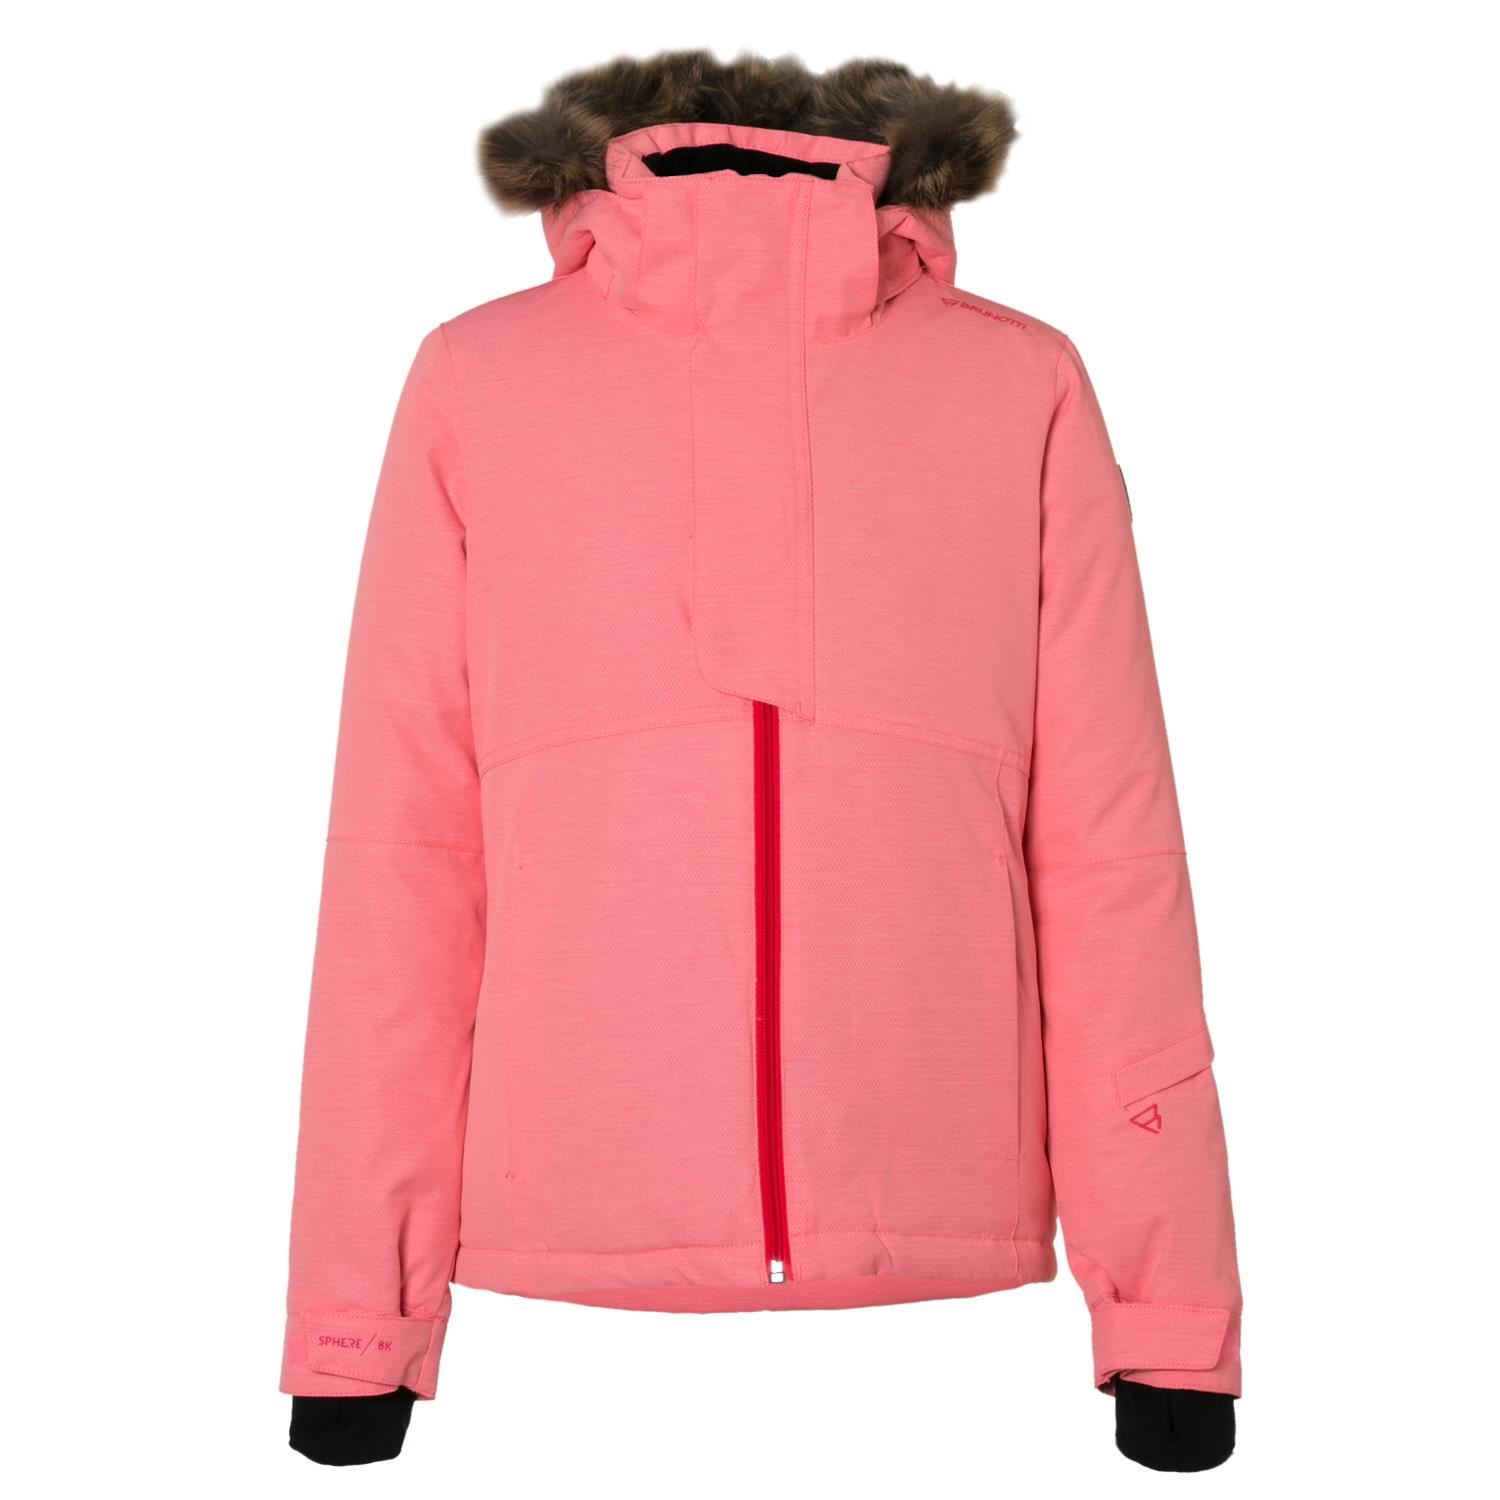 Brunotti Fairlead JR Girls Snowjacket